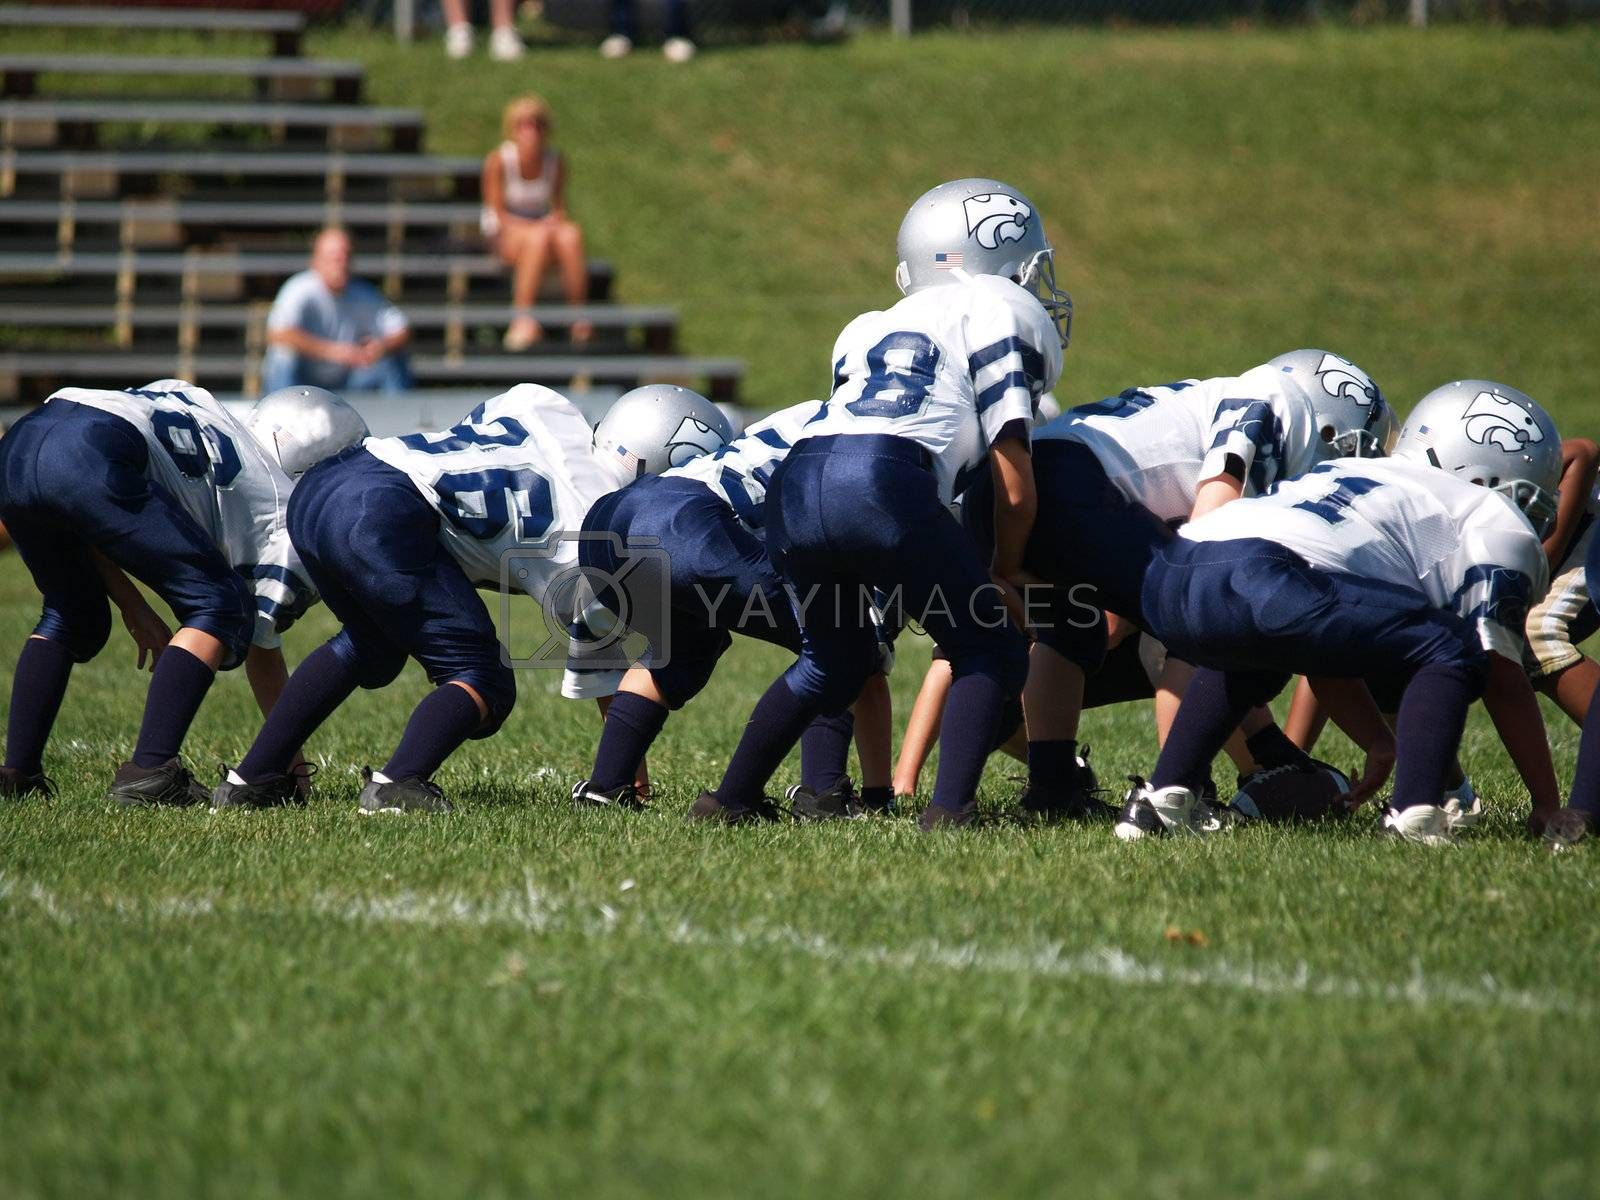 a young american football team ready at the line of scrimmage